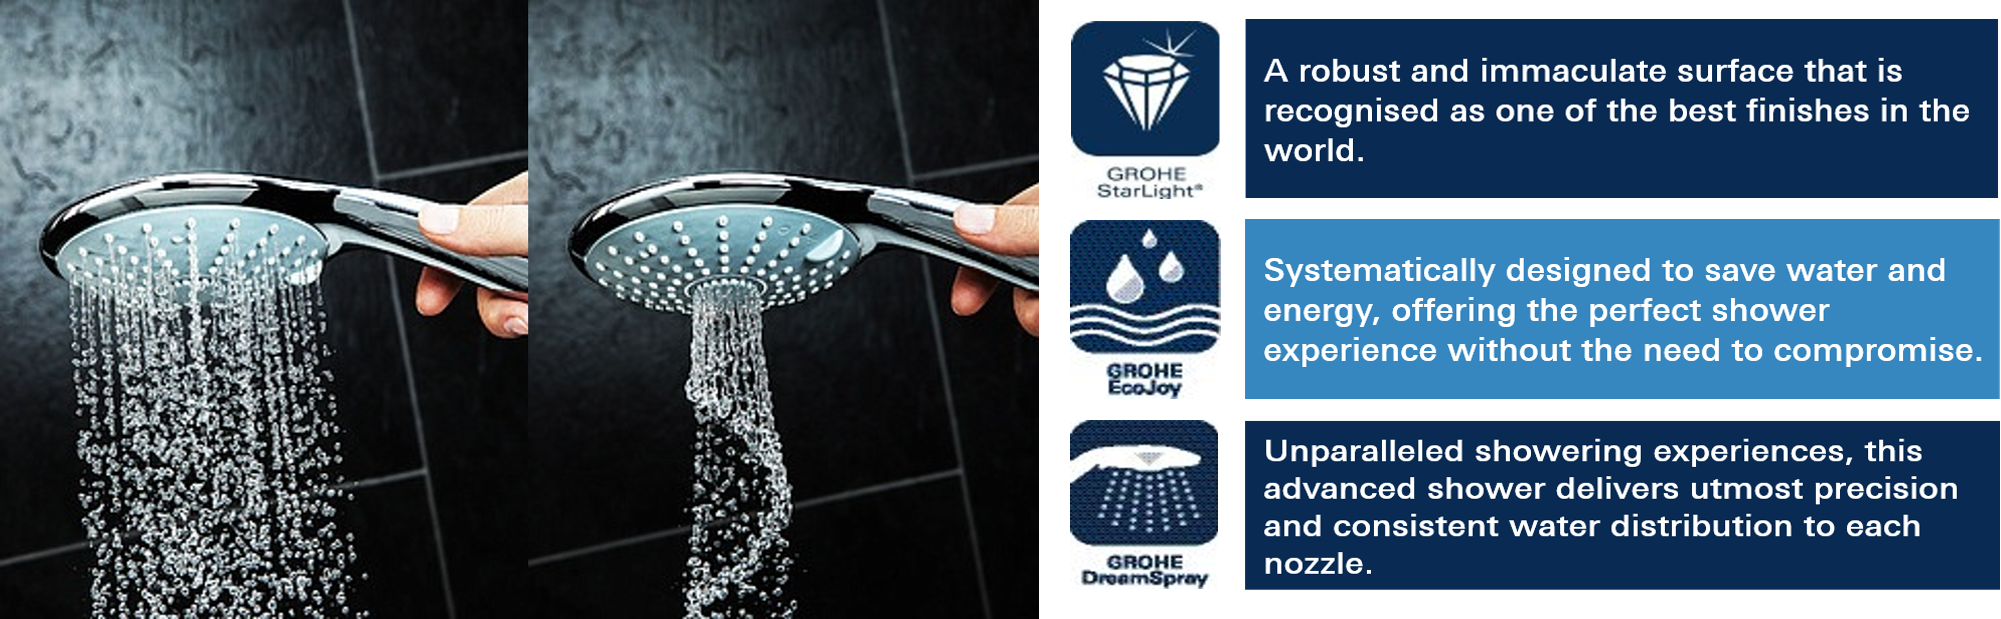 Famous Grohe Kiwa Shower Head Adornment - Bathtub Ideas - dilata.info